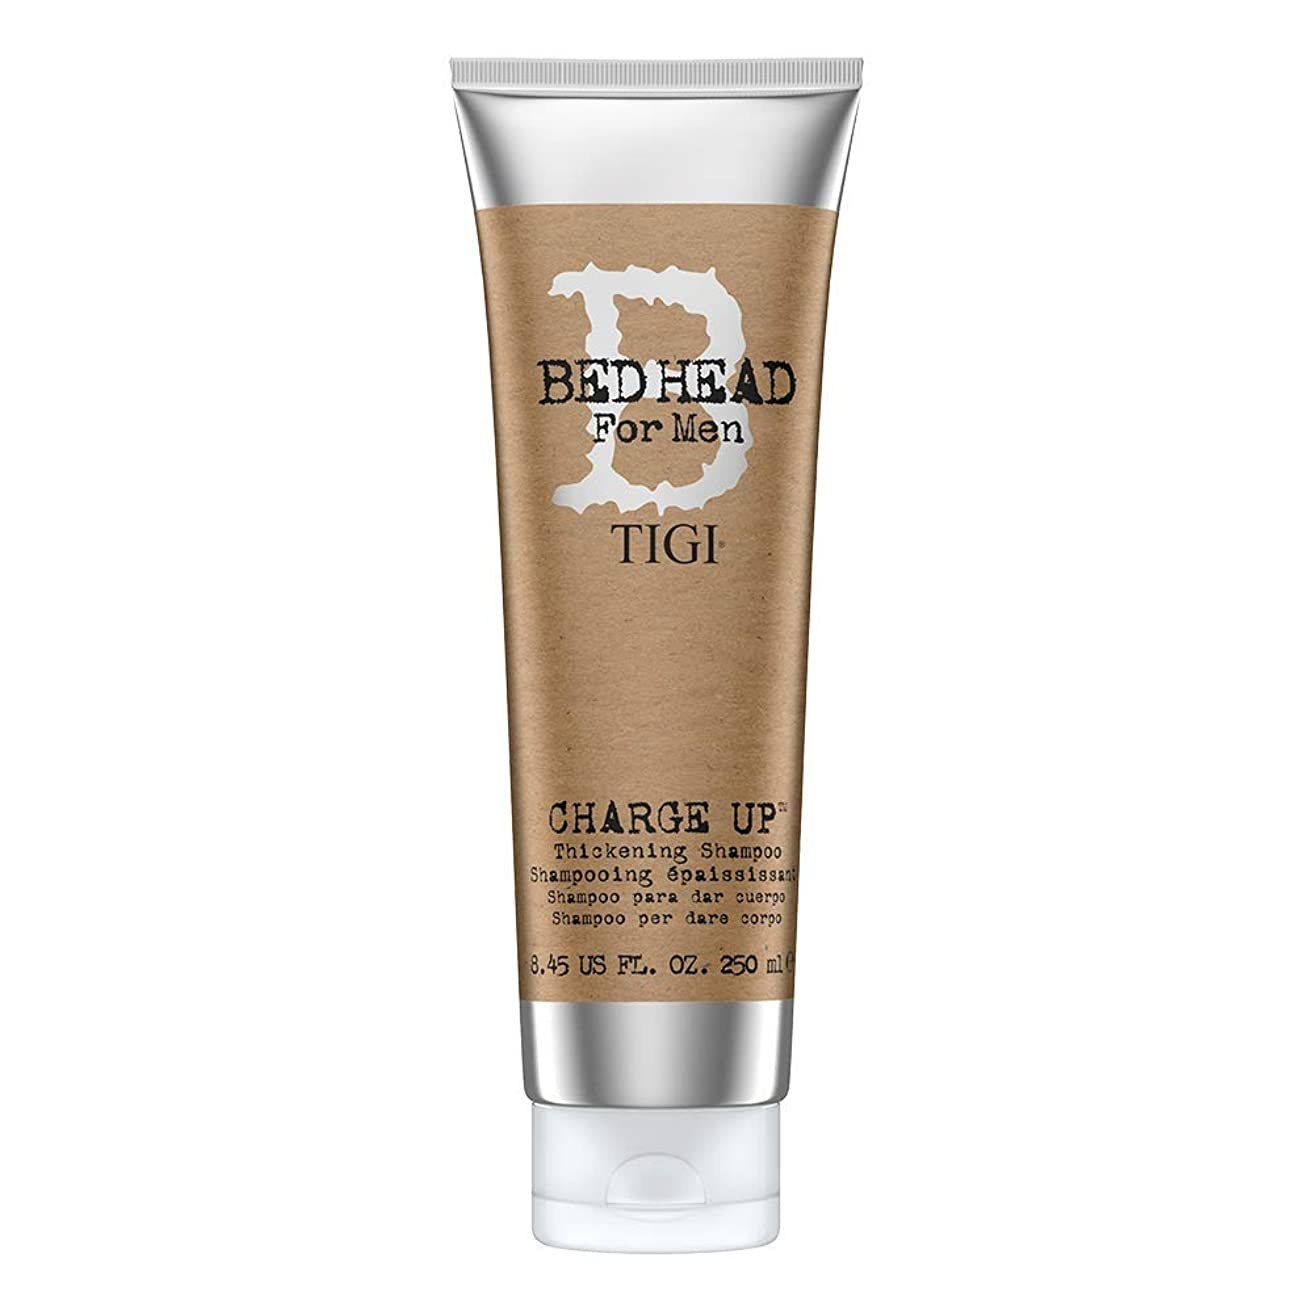 同様におじさんクラウンTIGI Bed Head For Men Charge Up Thickening Conditioner 200ml (並行輸入品)